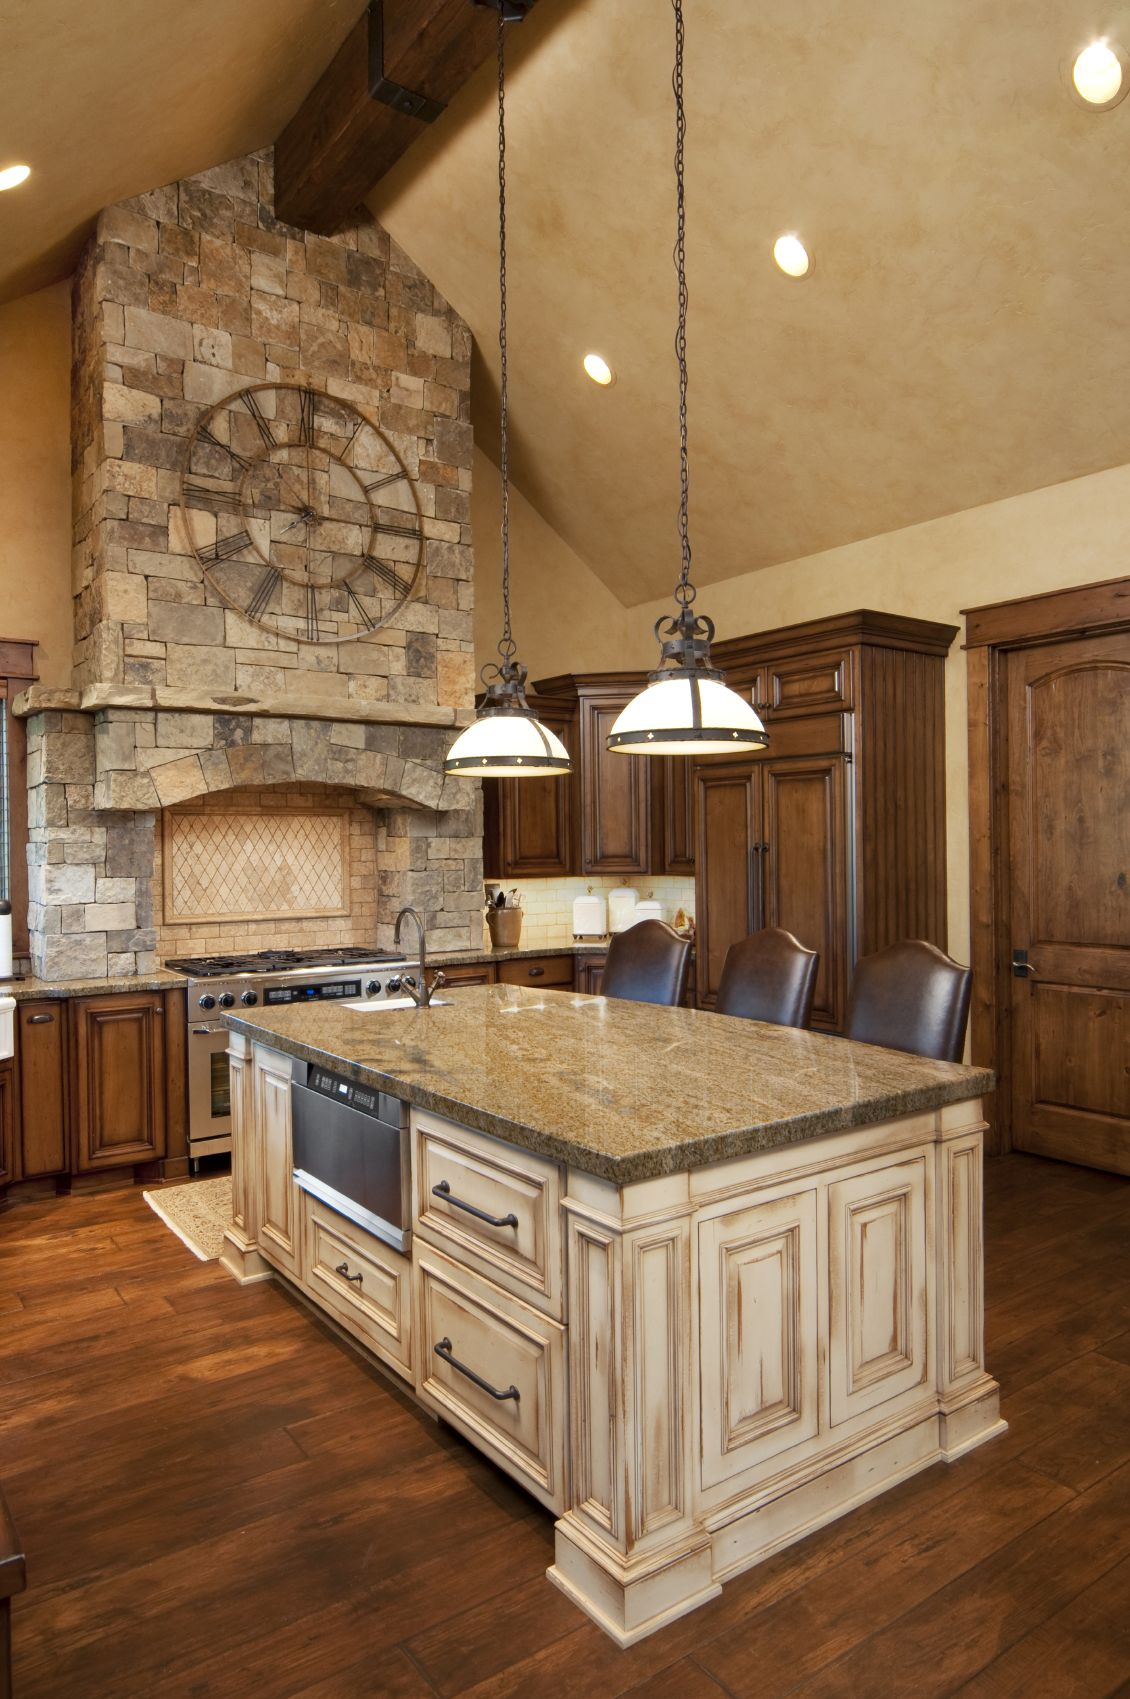 90 Different Kitchen Island Ideas And Designs Photos Luxury Kitchen Island Custom Kitchen Island Kitchen Island With Sink